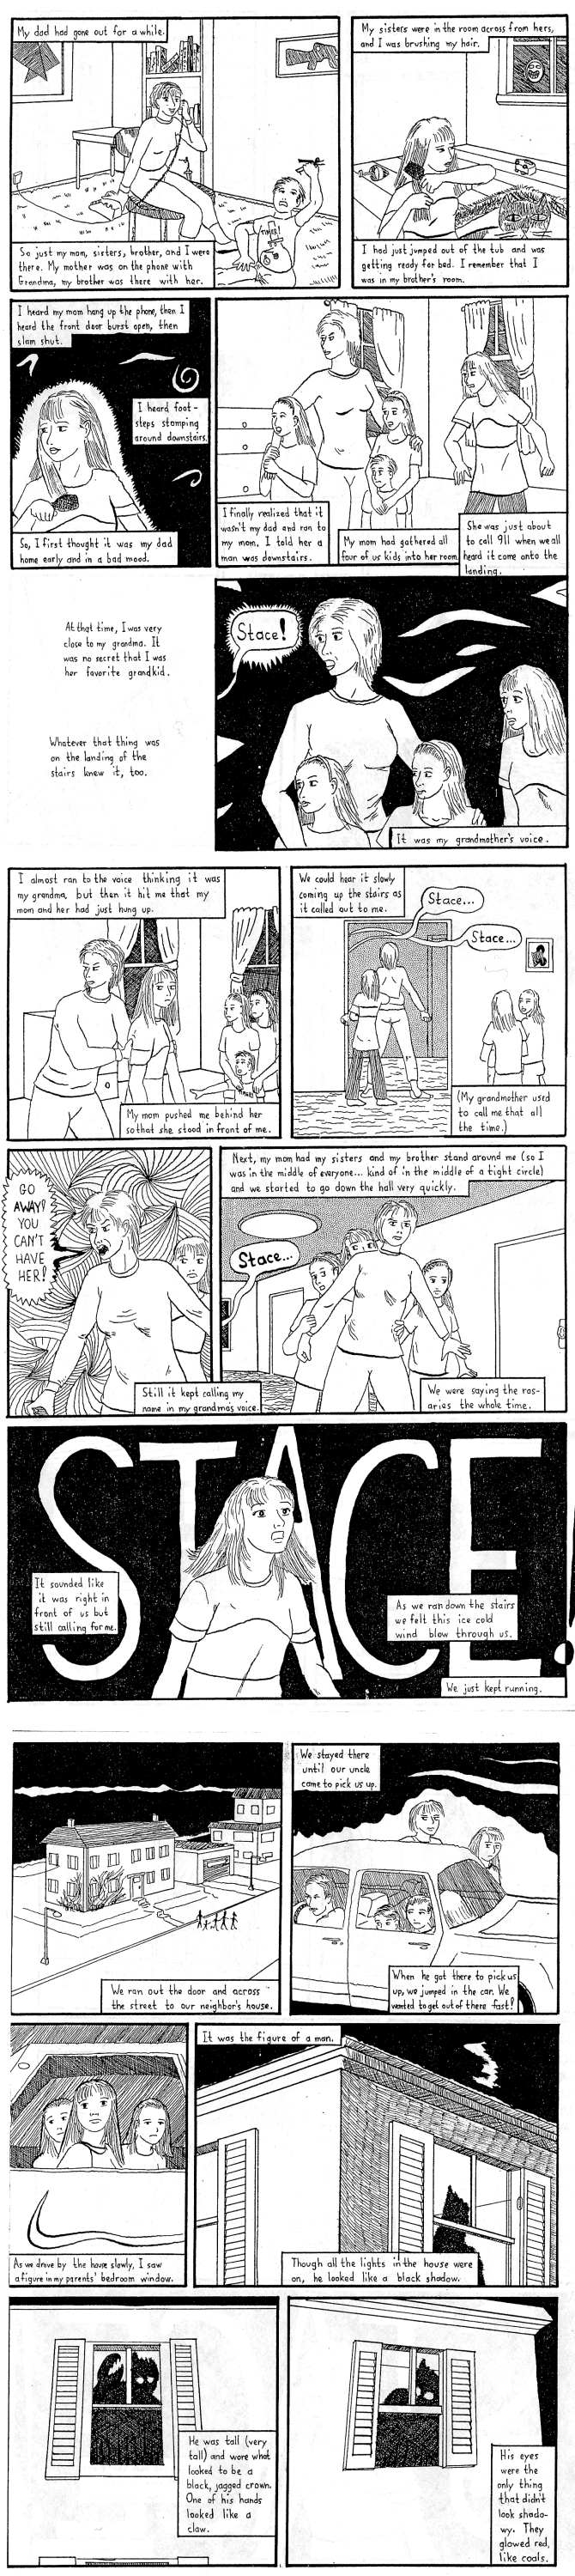 third page of ghost story comic of girl in connecticut